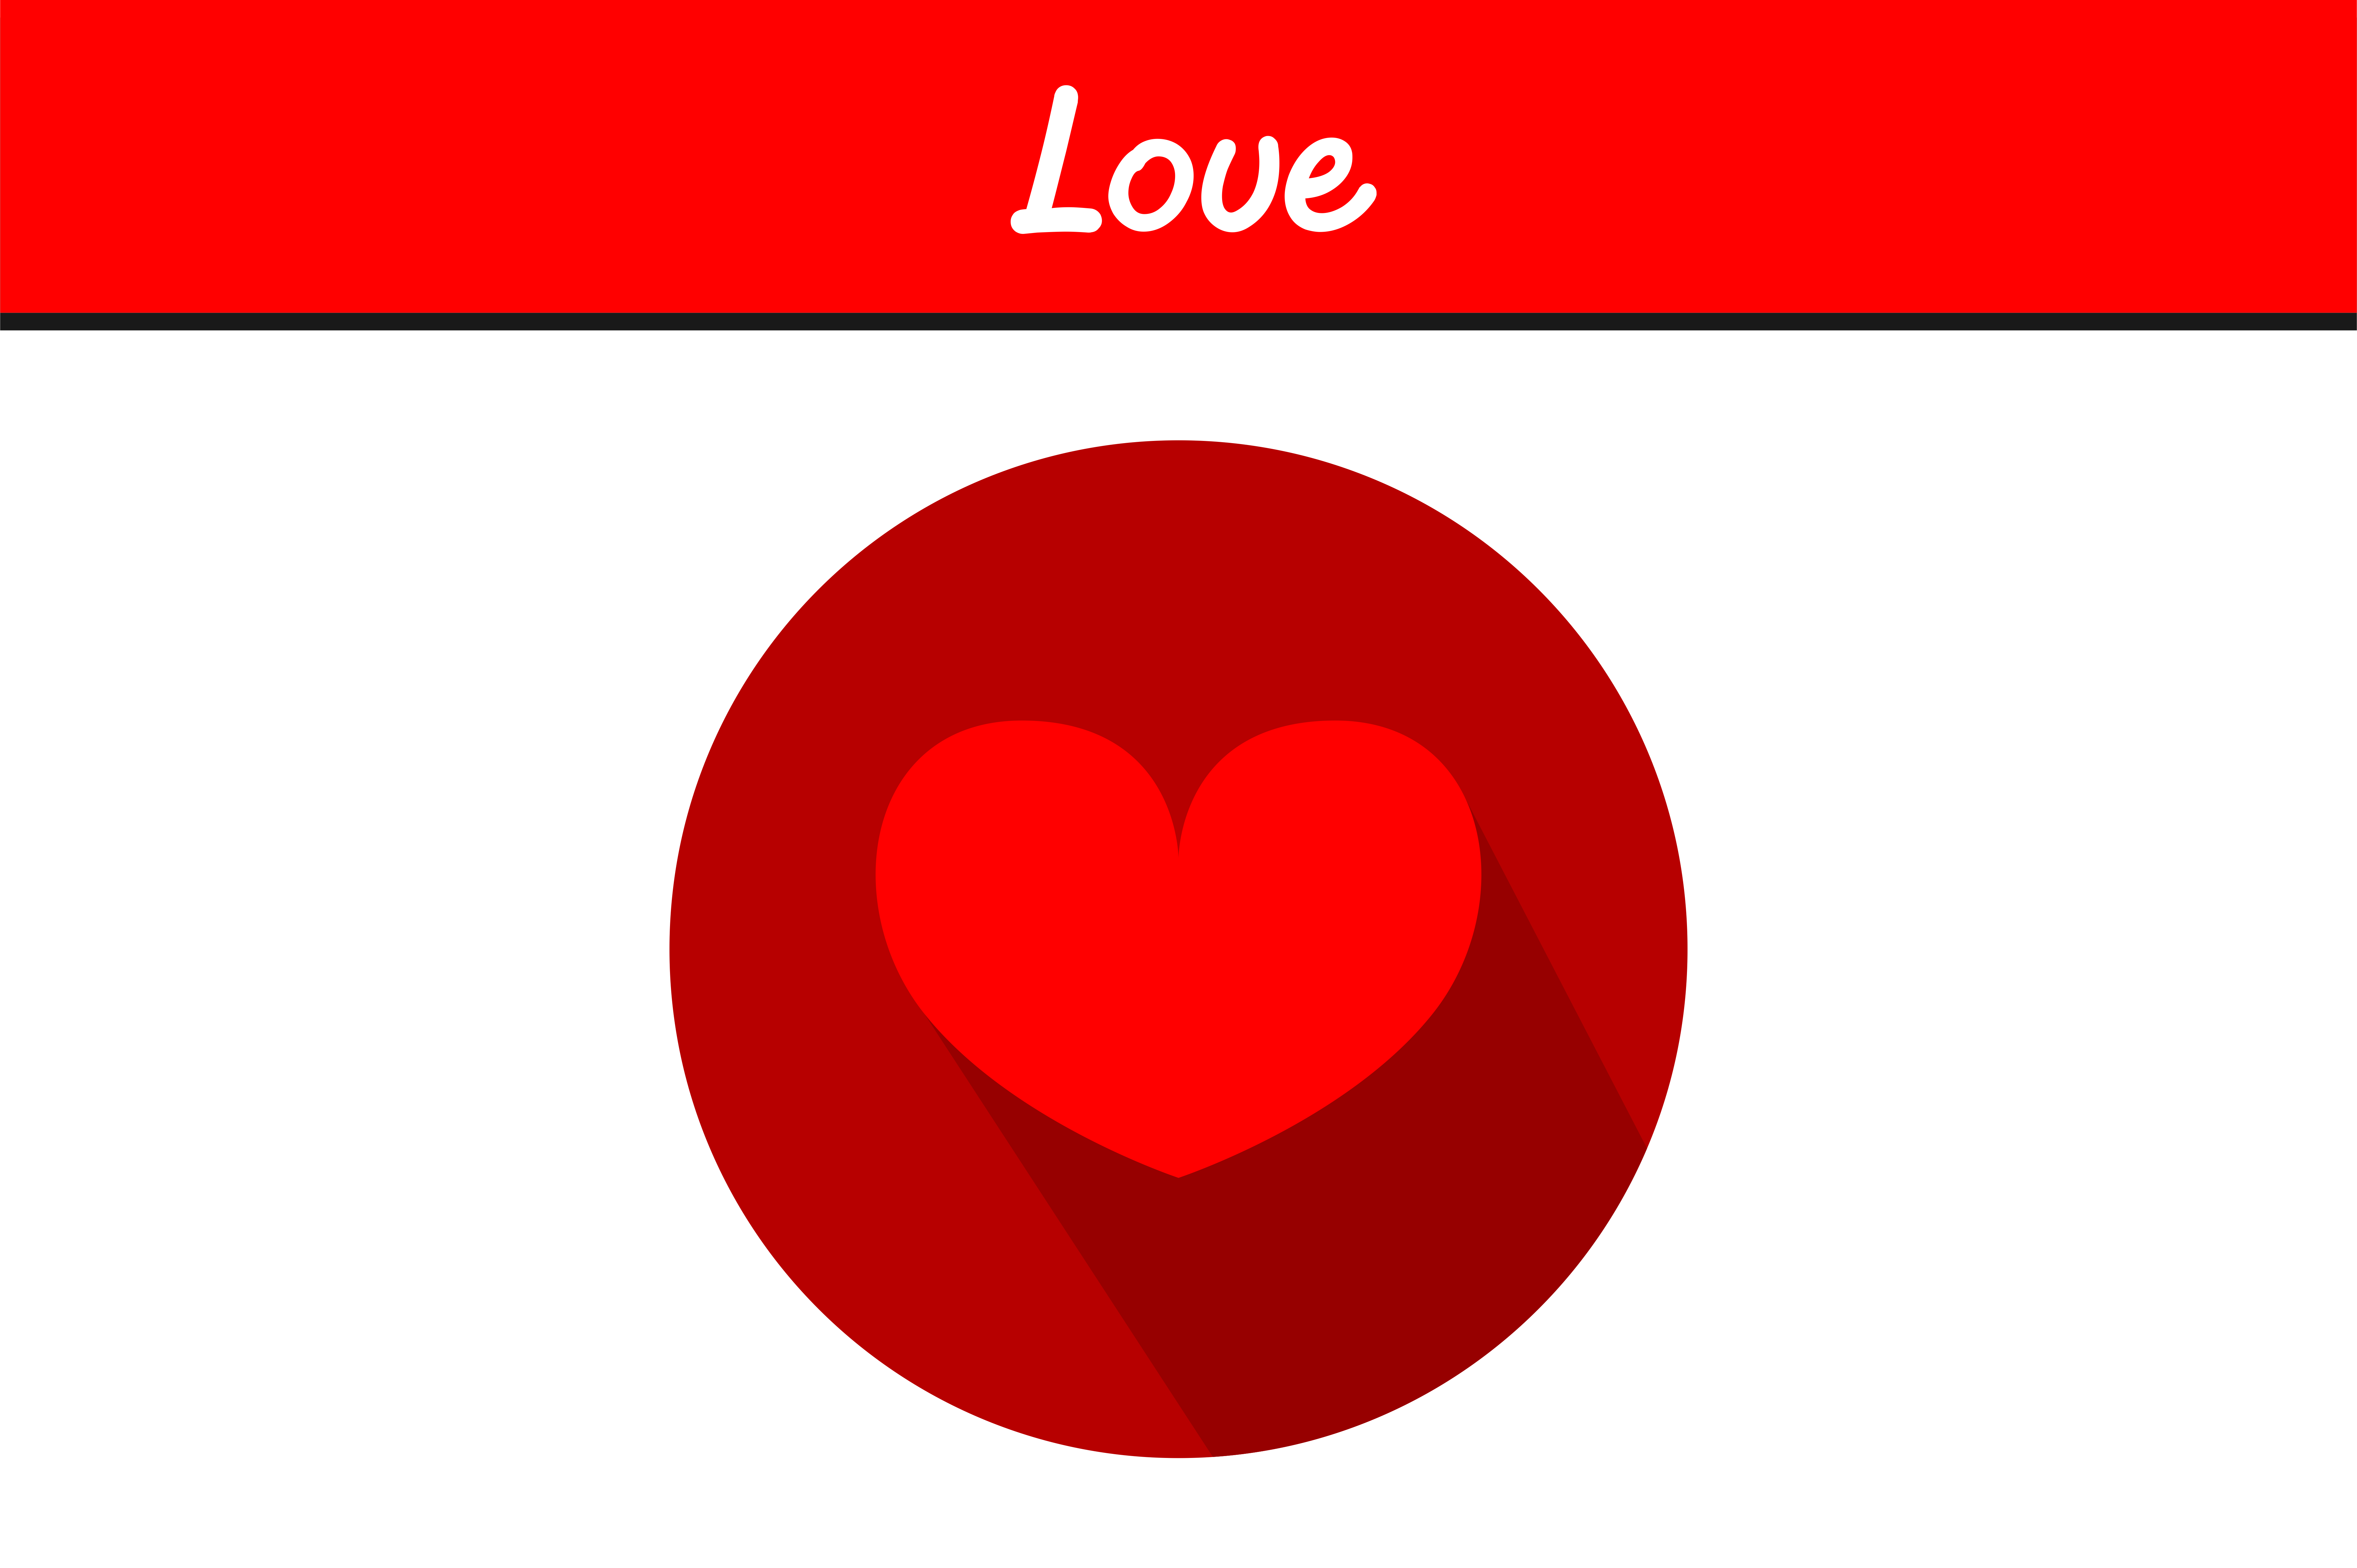 Download Free Red Love Graphic By Arief Sapta Adjie Creative Fabrica for Cricut Explore, Silhouette and other cutting machines.